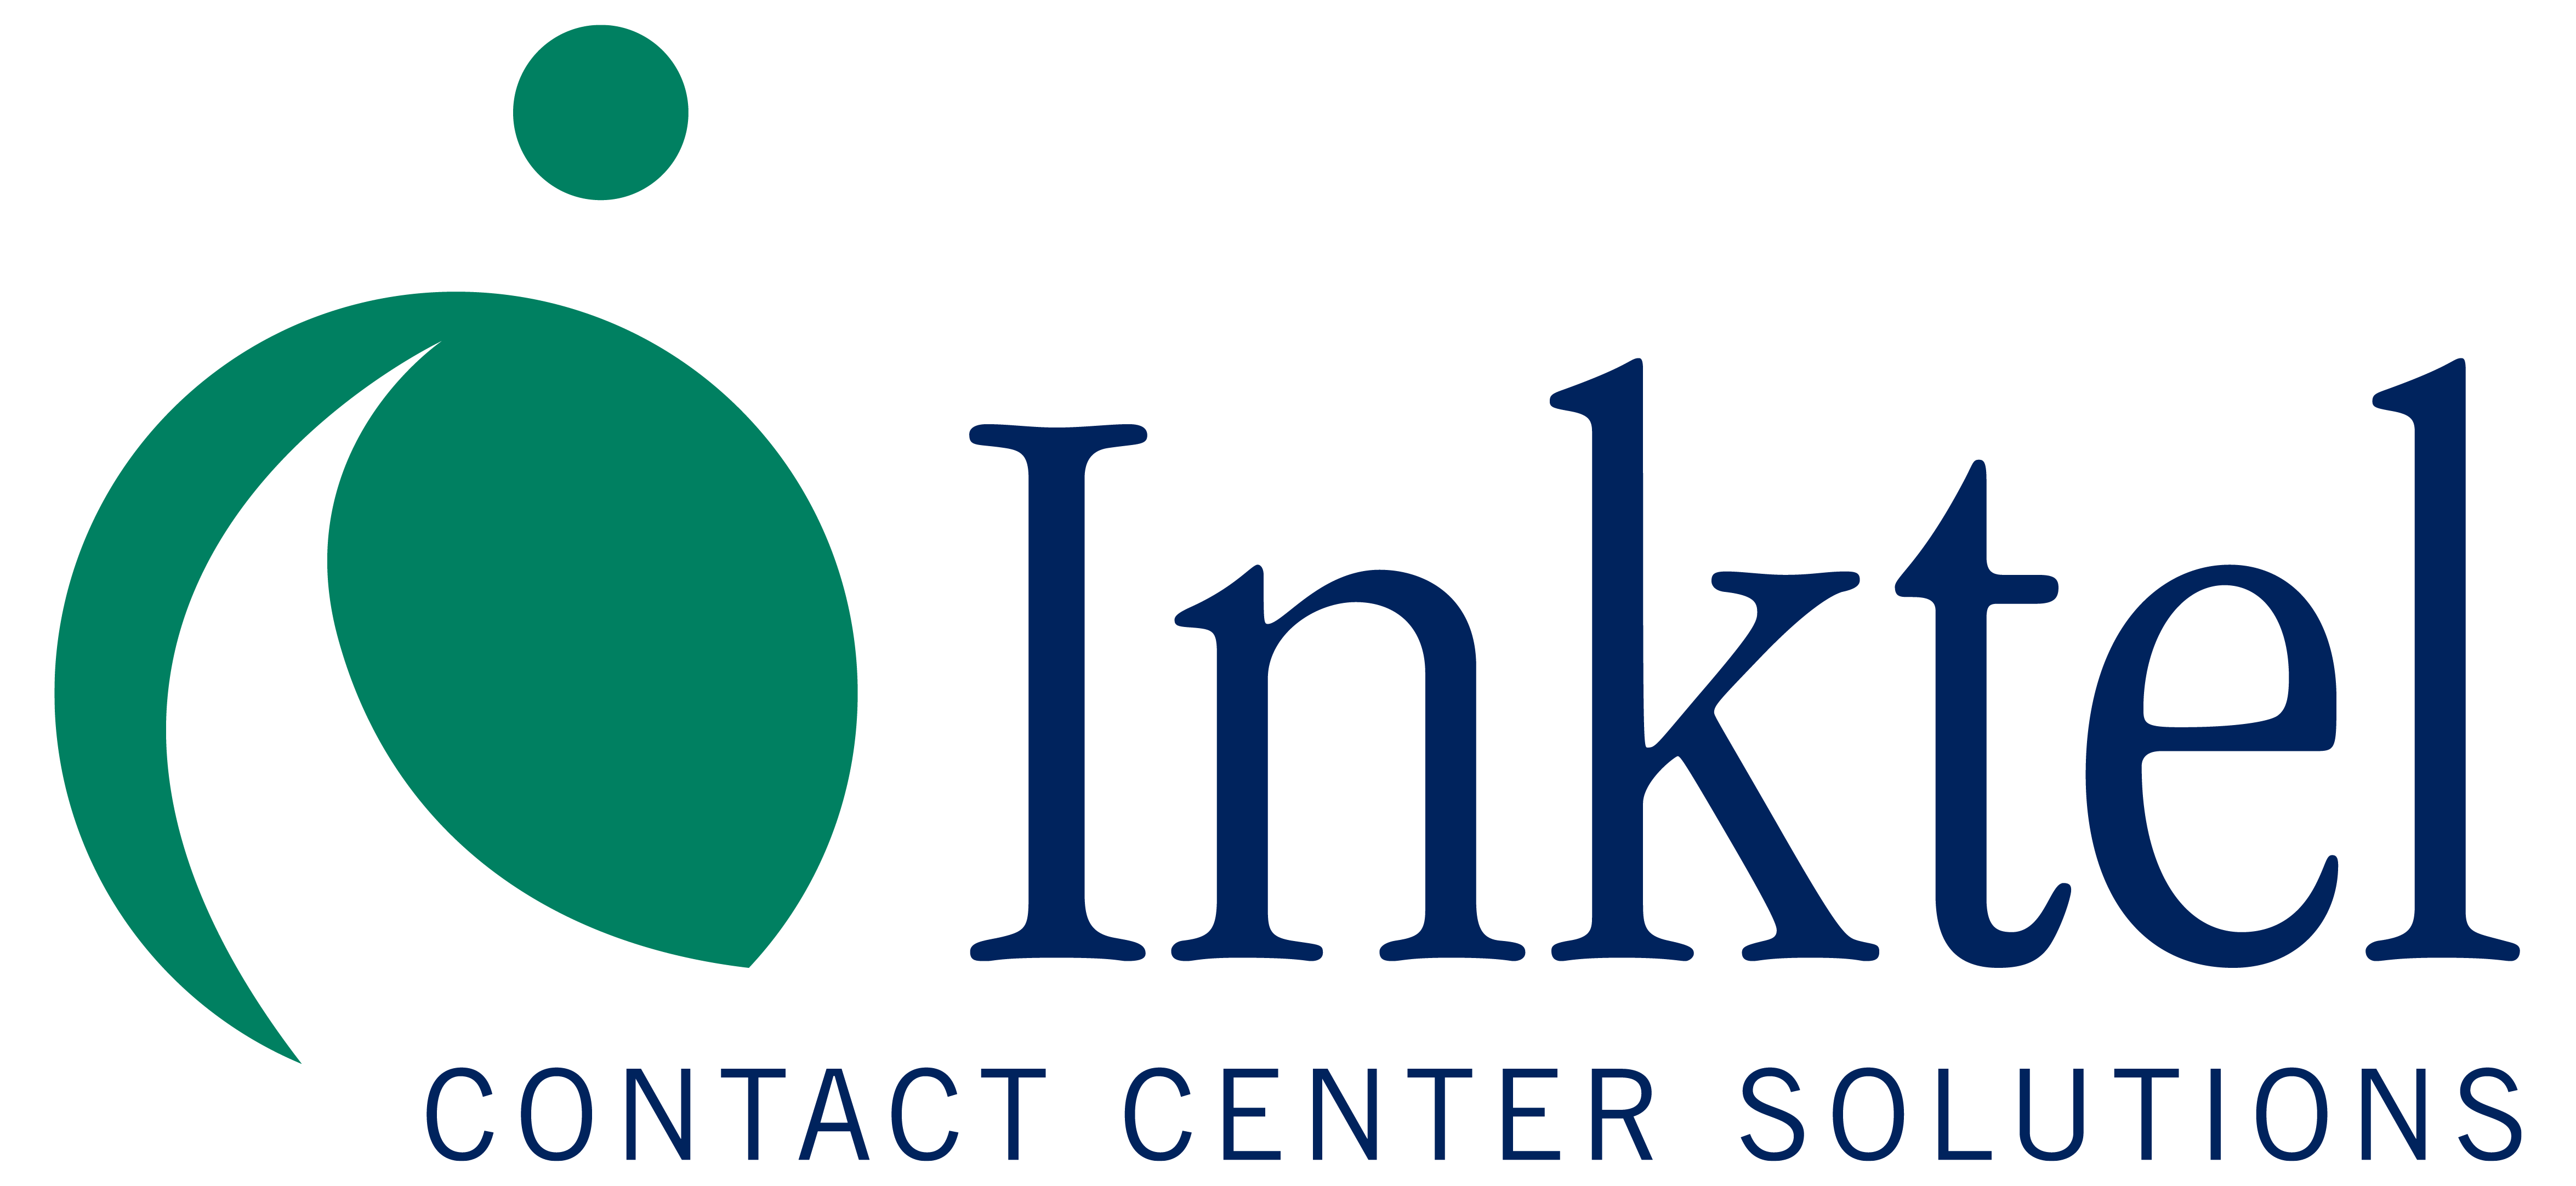 Inktel Contact Center Solutions logo